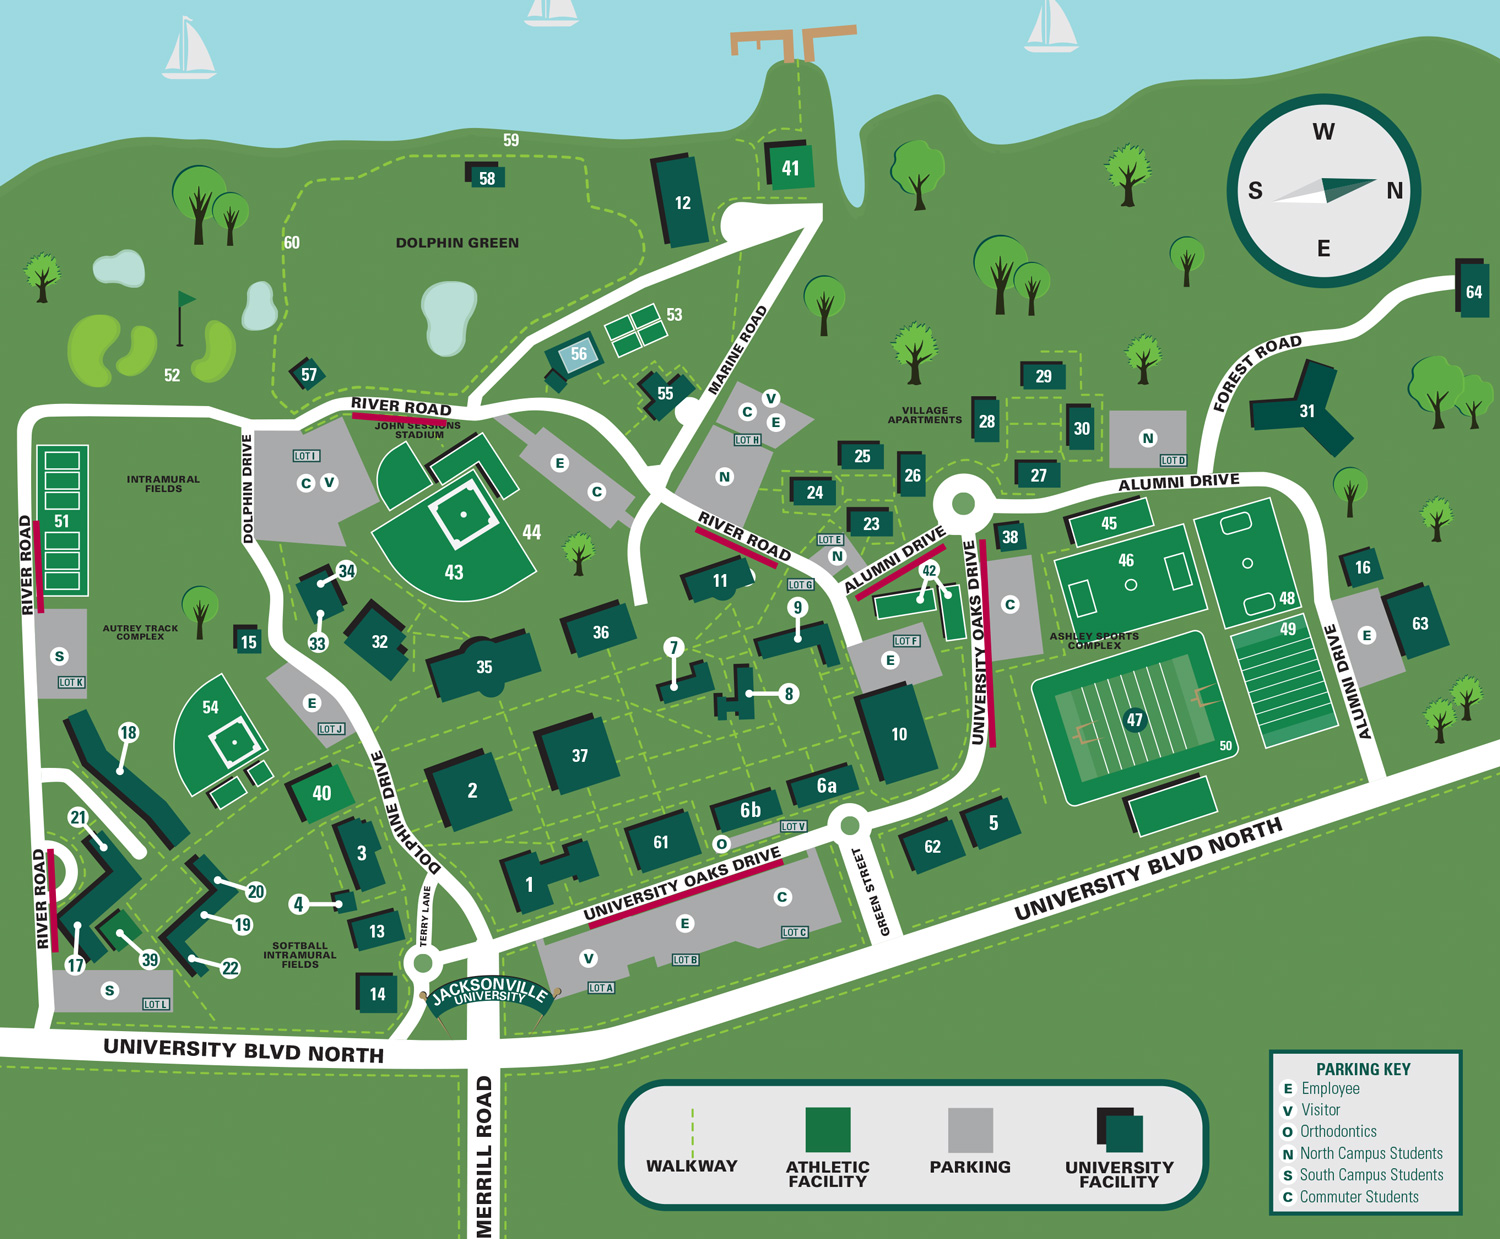 Campus Map - Routes to take on campus during Matthew clean-up